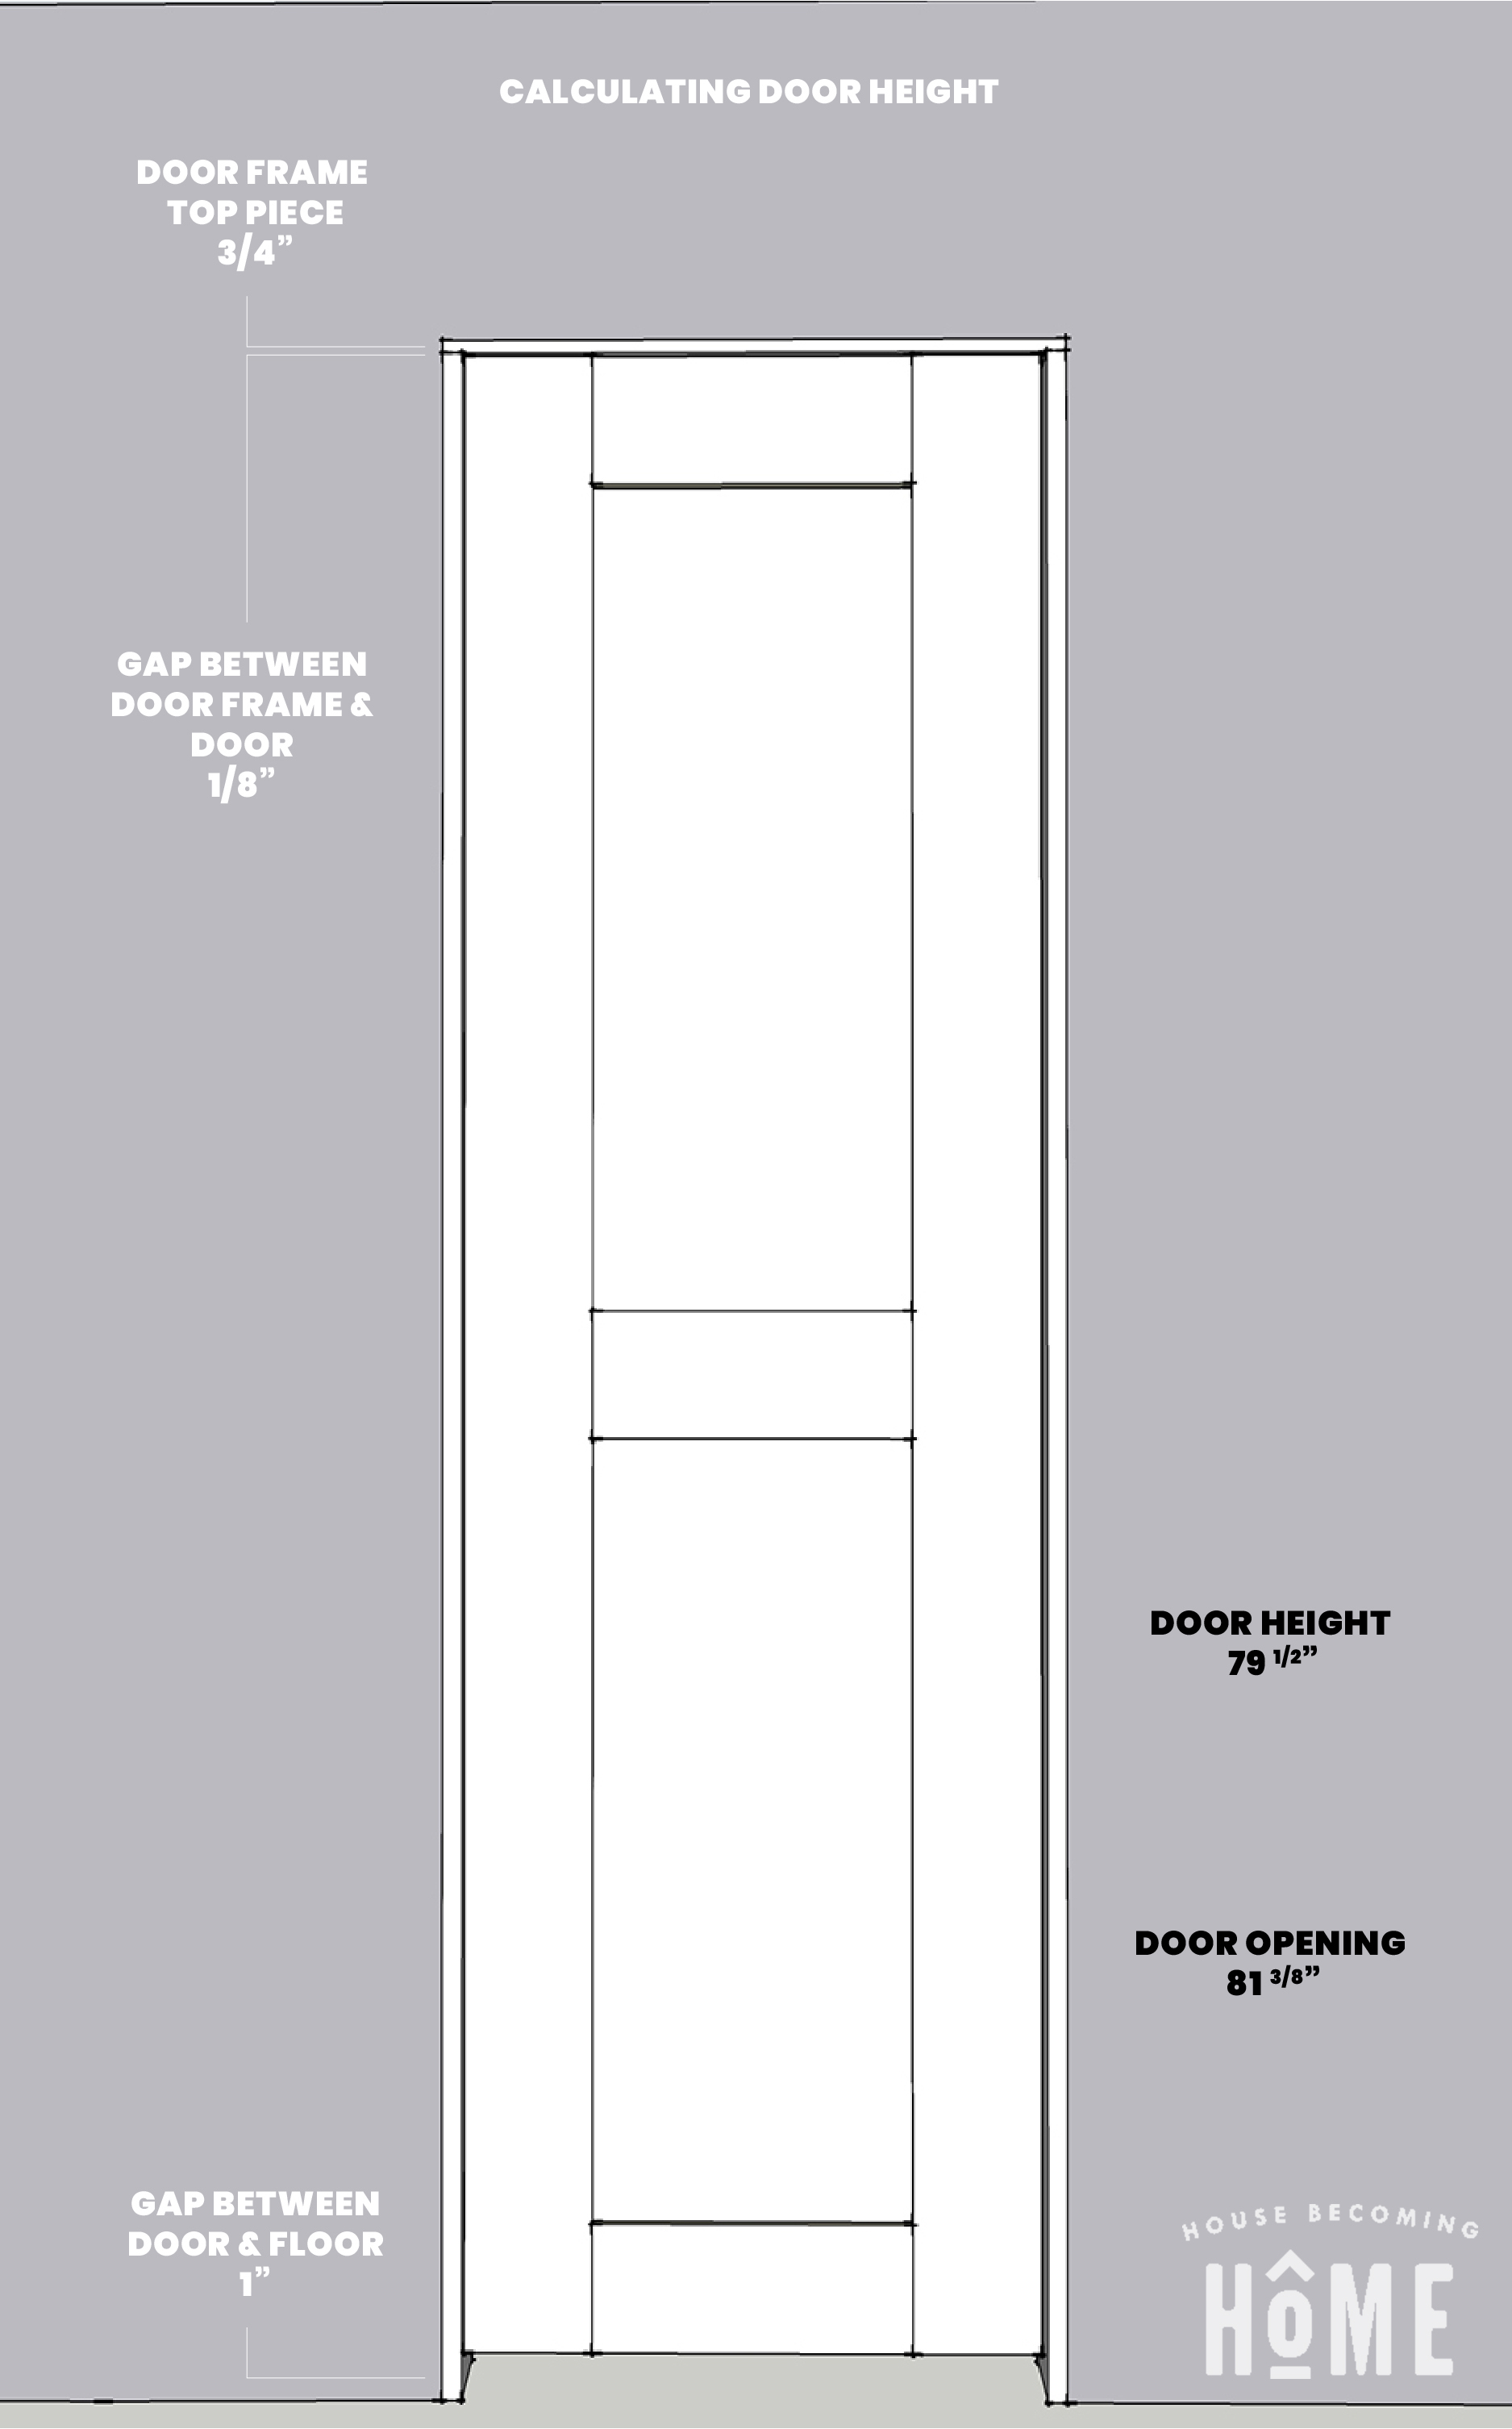 DIY Shaker Style Door Height Measurements